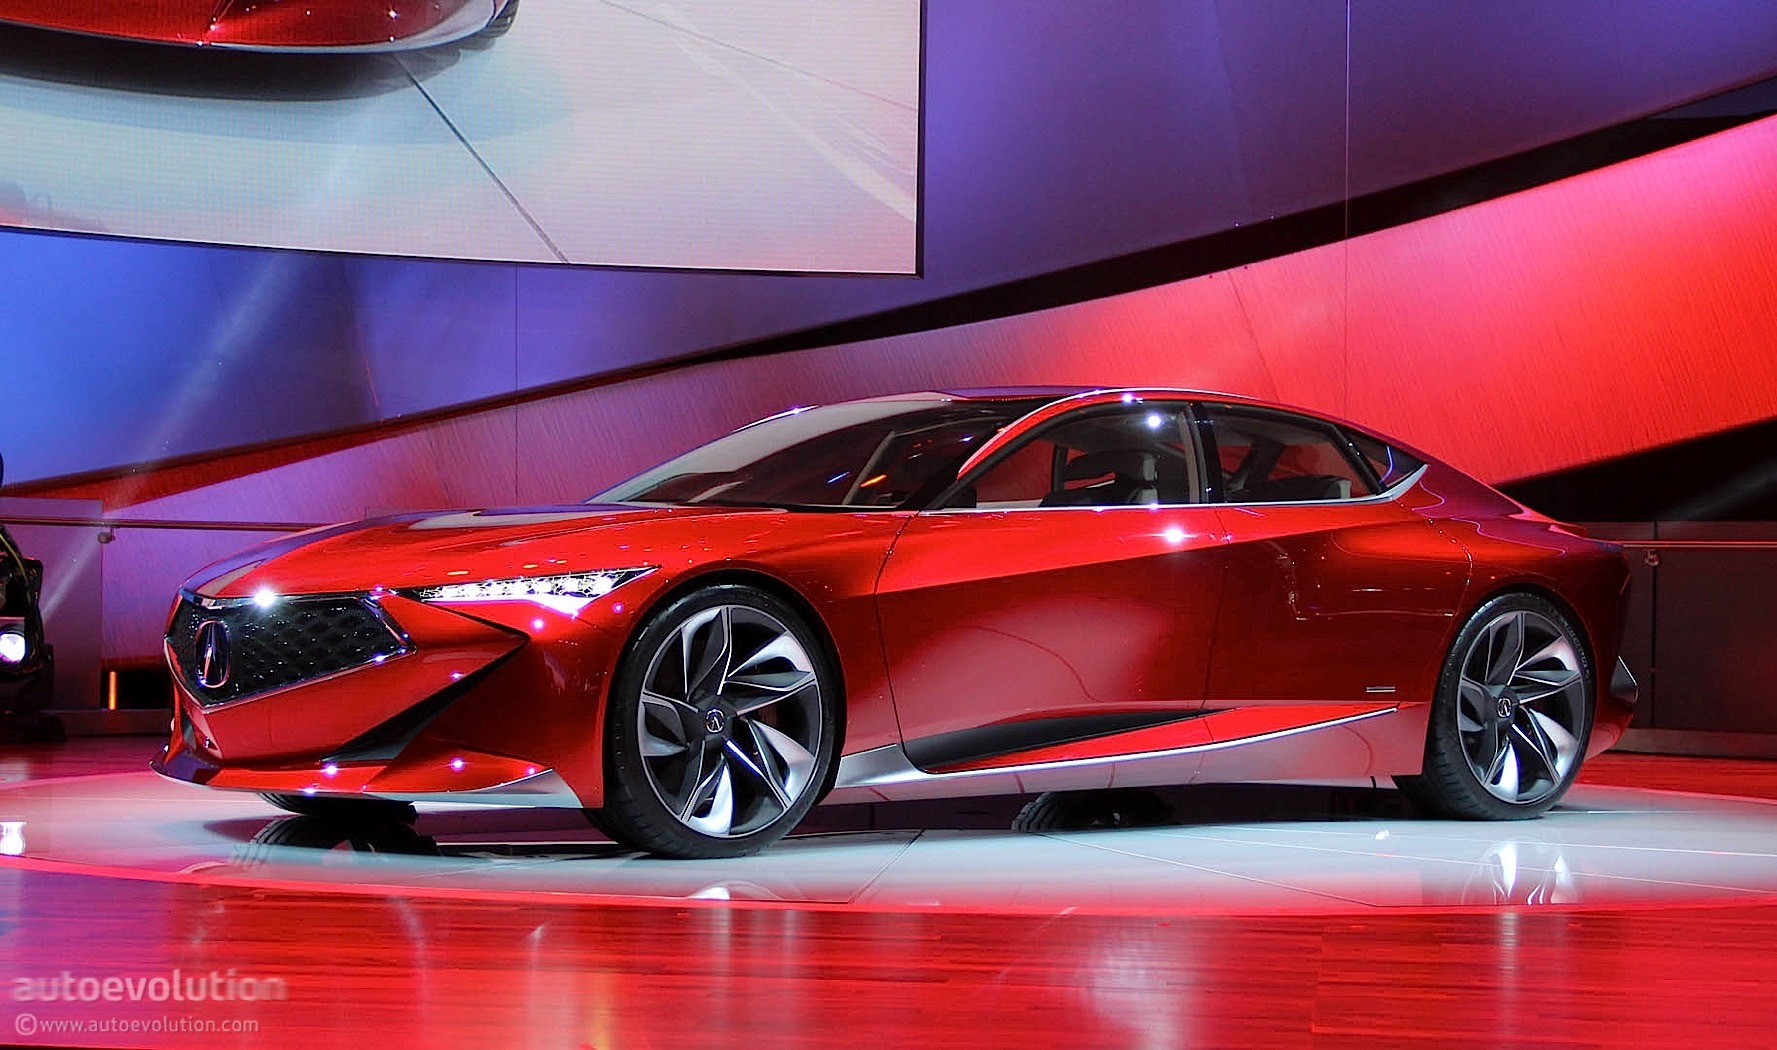 Acura S Next Generation Rlx To Be Inspired By Precision Concept